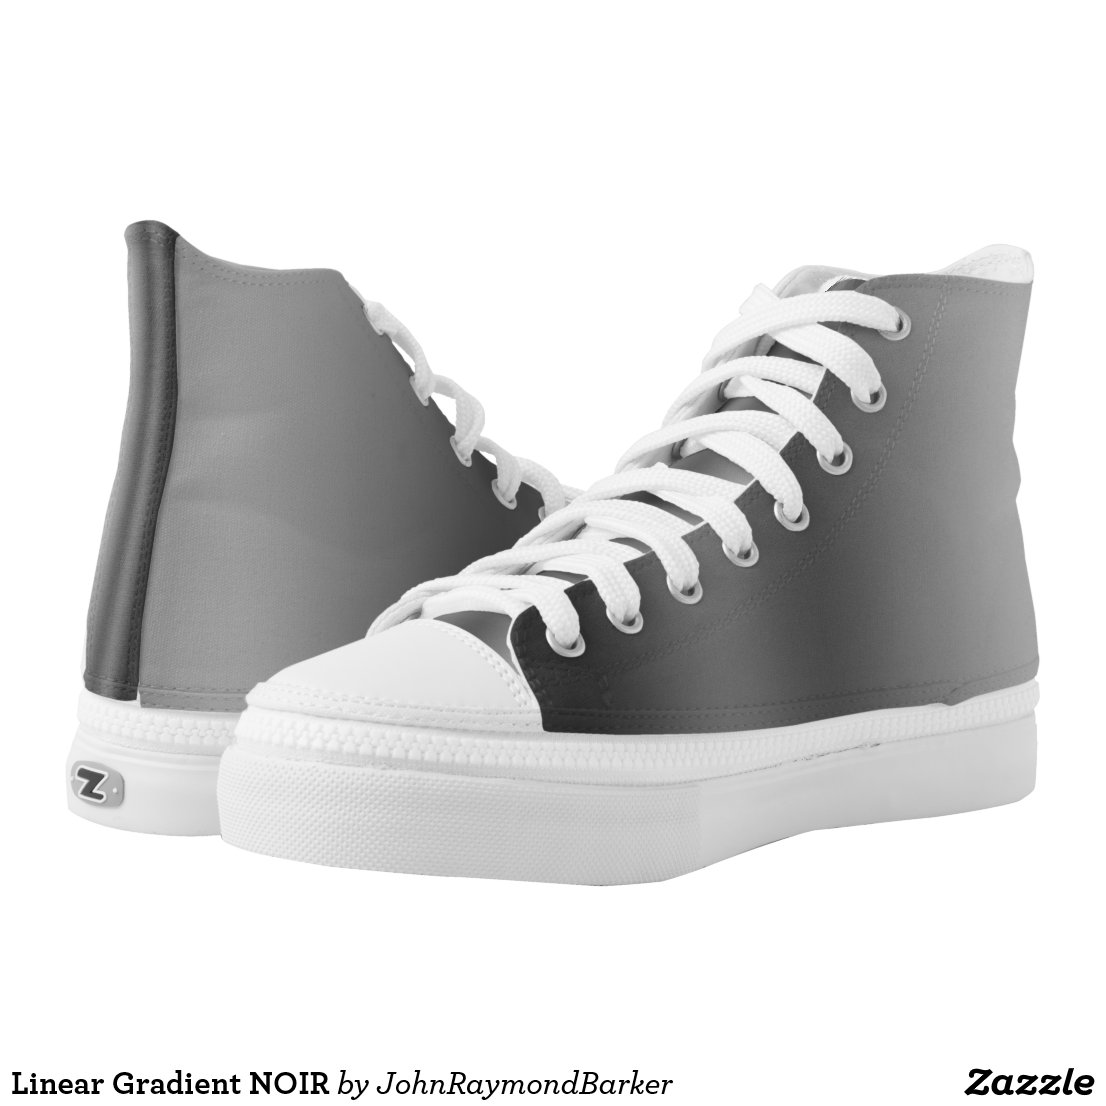 Linear Gradient NOIR High-Top Sneakers